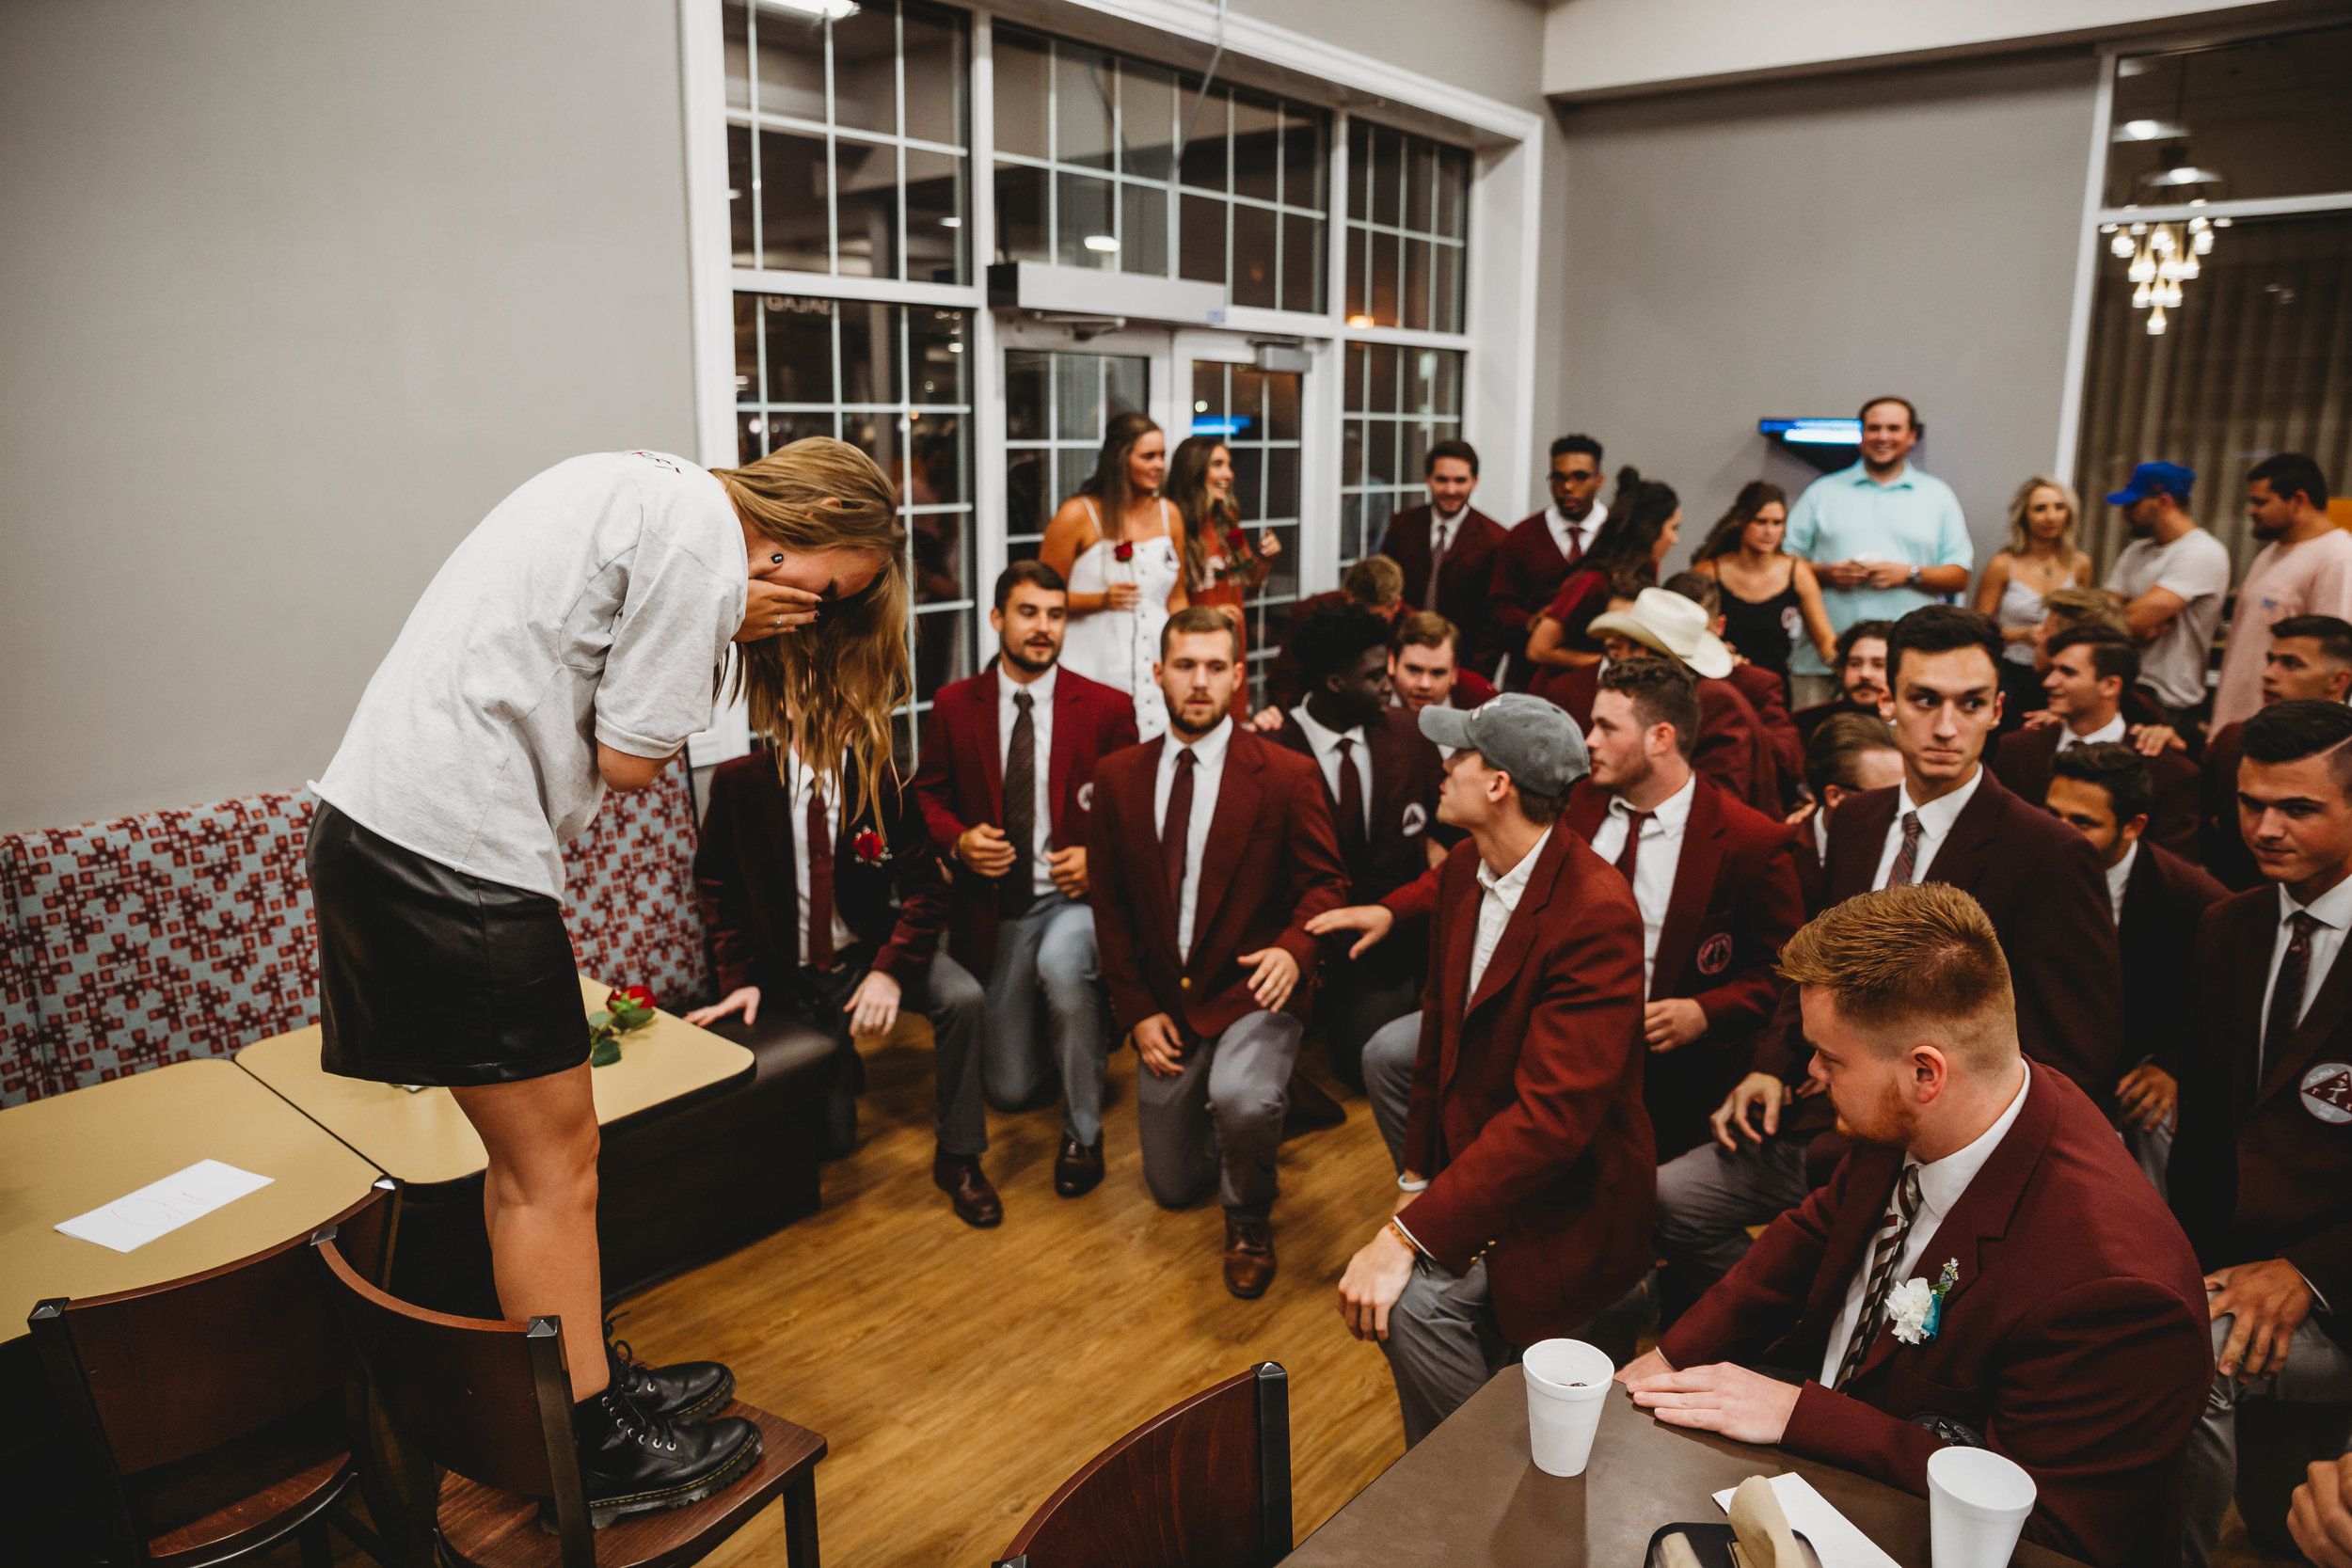 Alpha Gamma Chi members kneel for their new sweetheart.